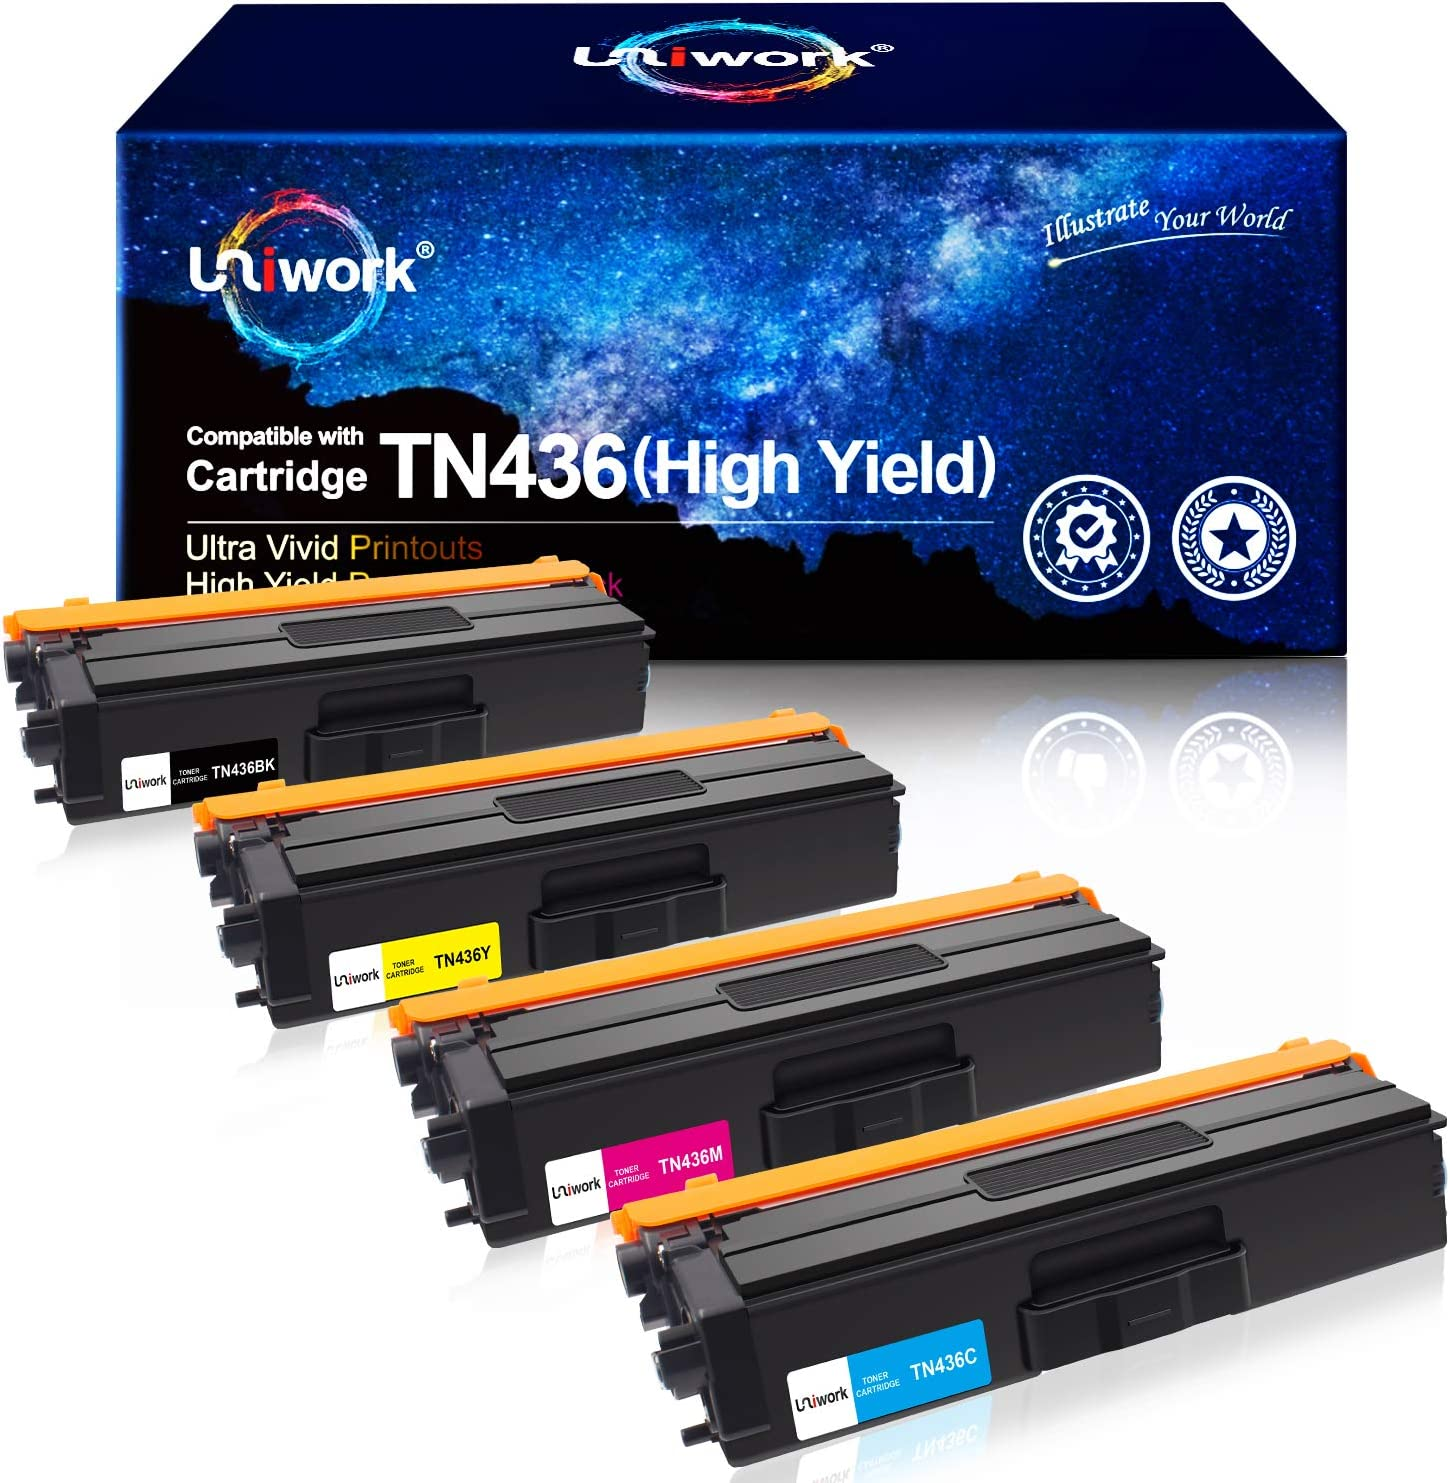 Uniwork Compatible Toner Cartridge Replacement for Brother TN436 TN 436 TN436BK TN433 use with MFC-L8900CDW HL-L8360CDW HL-L8260CDW MFC-L8610CDW MFC-L9570CDW HL-L9310CDW Printer tray (4 Pack)